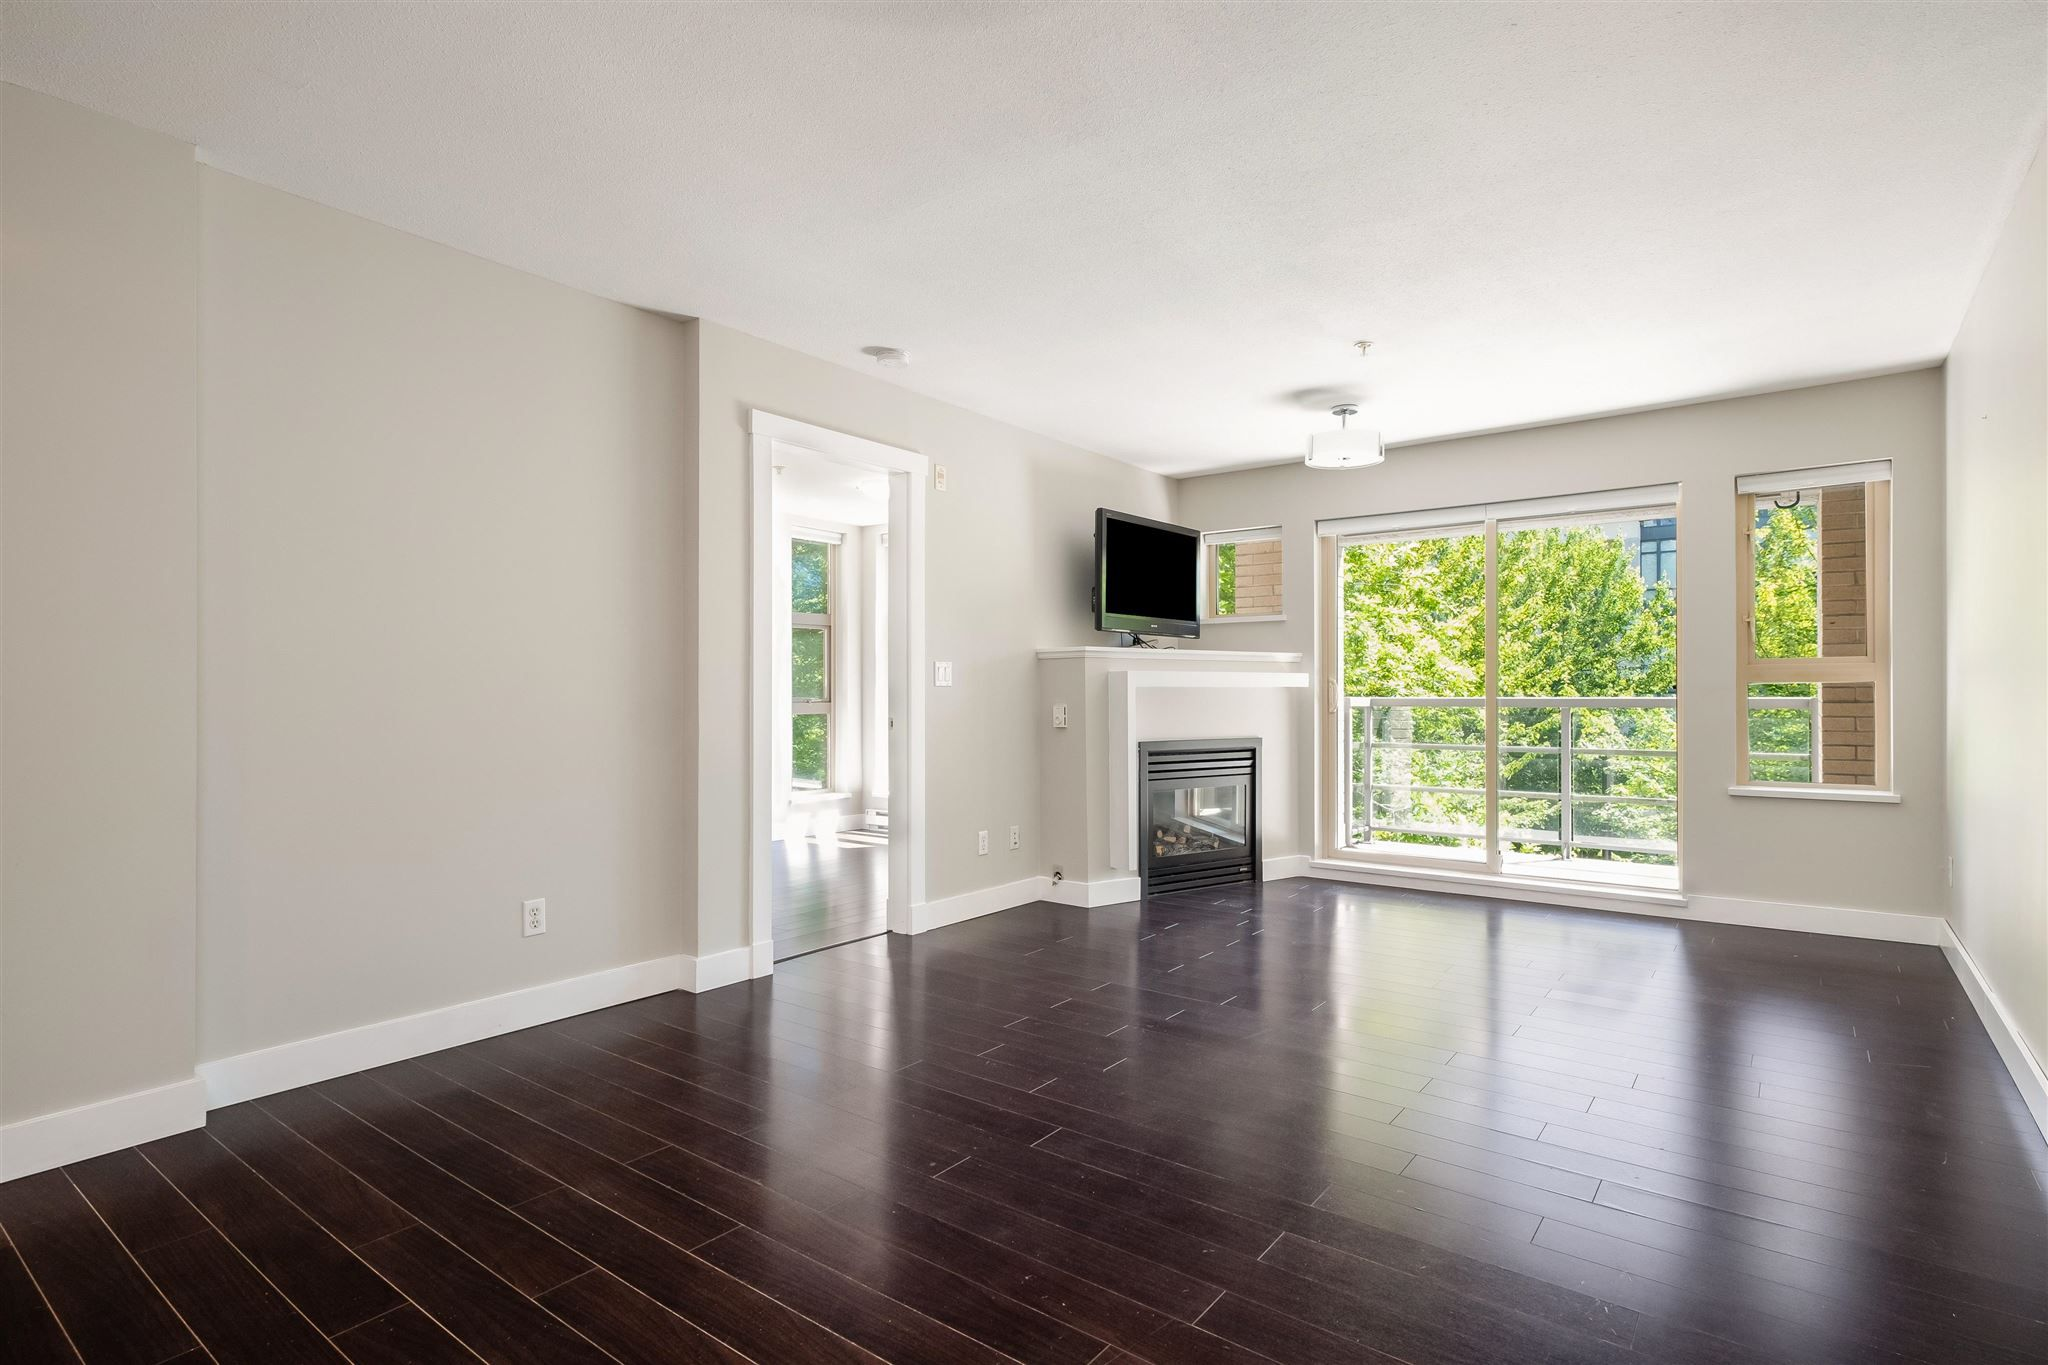 """Photo 3: Photos: 211 9339 UNIVERSITY Crescent in Burnaby: Simon Fraser Univer. Condo for sale in """"HARMONY"""" (Burnaby North)  : MLS®# R2597666"""